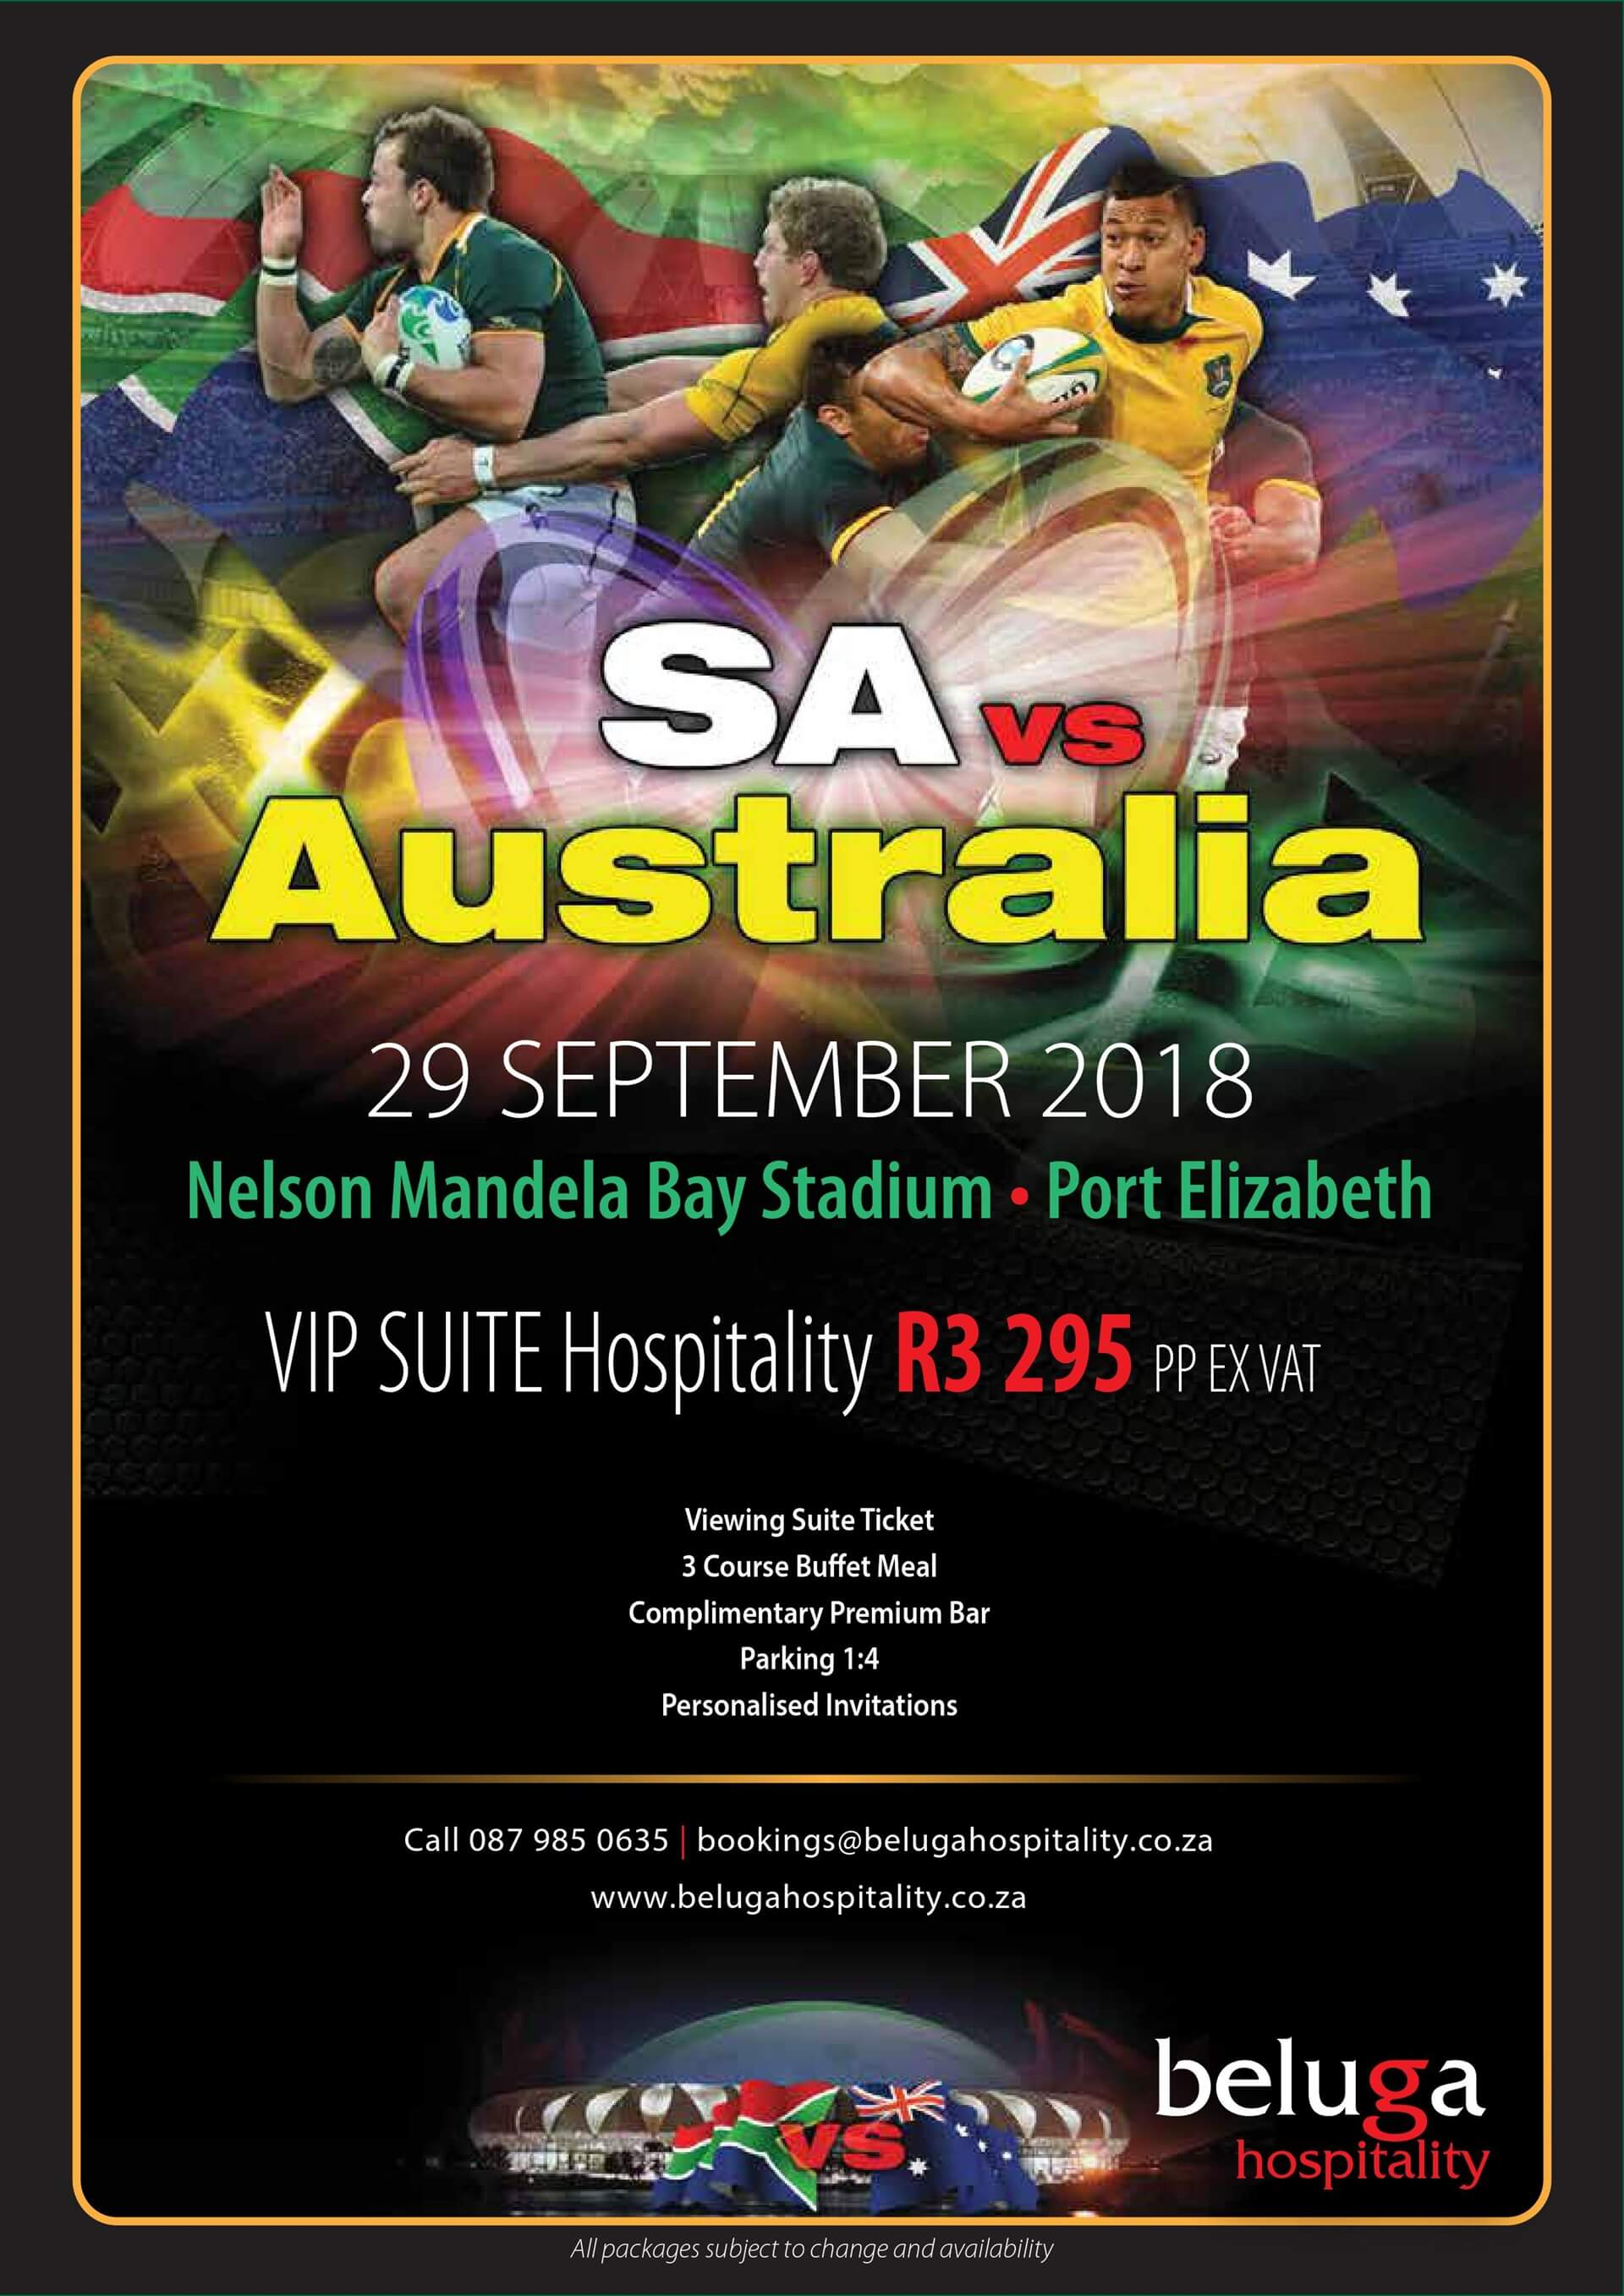 The Rugby Championship - South Africa vs Australia - Beluga Hospitality-flyer